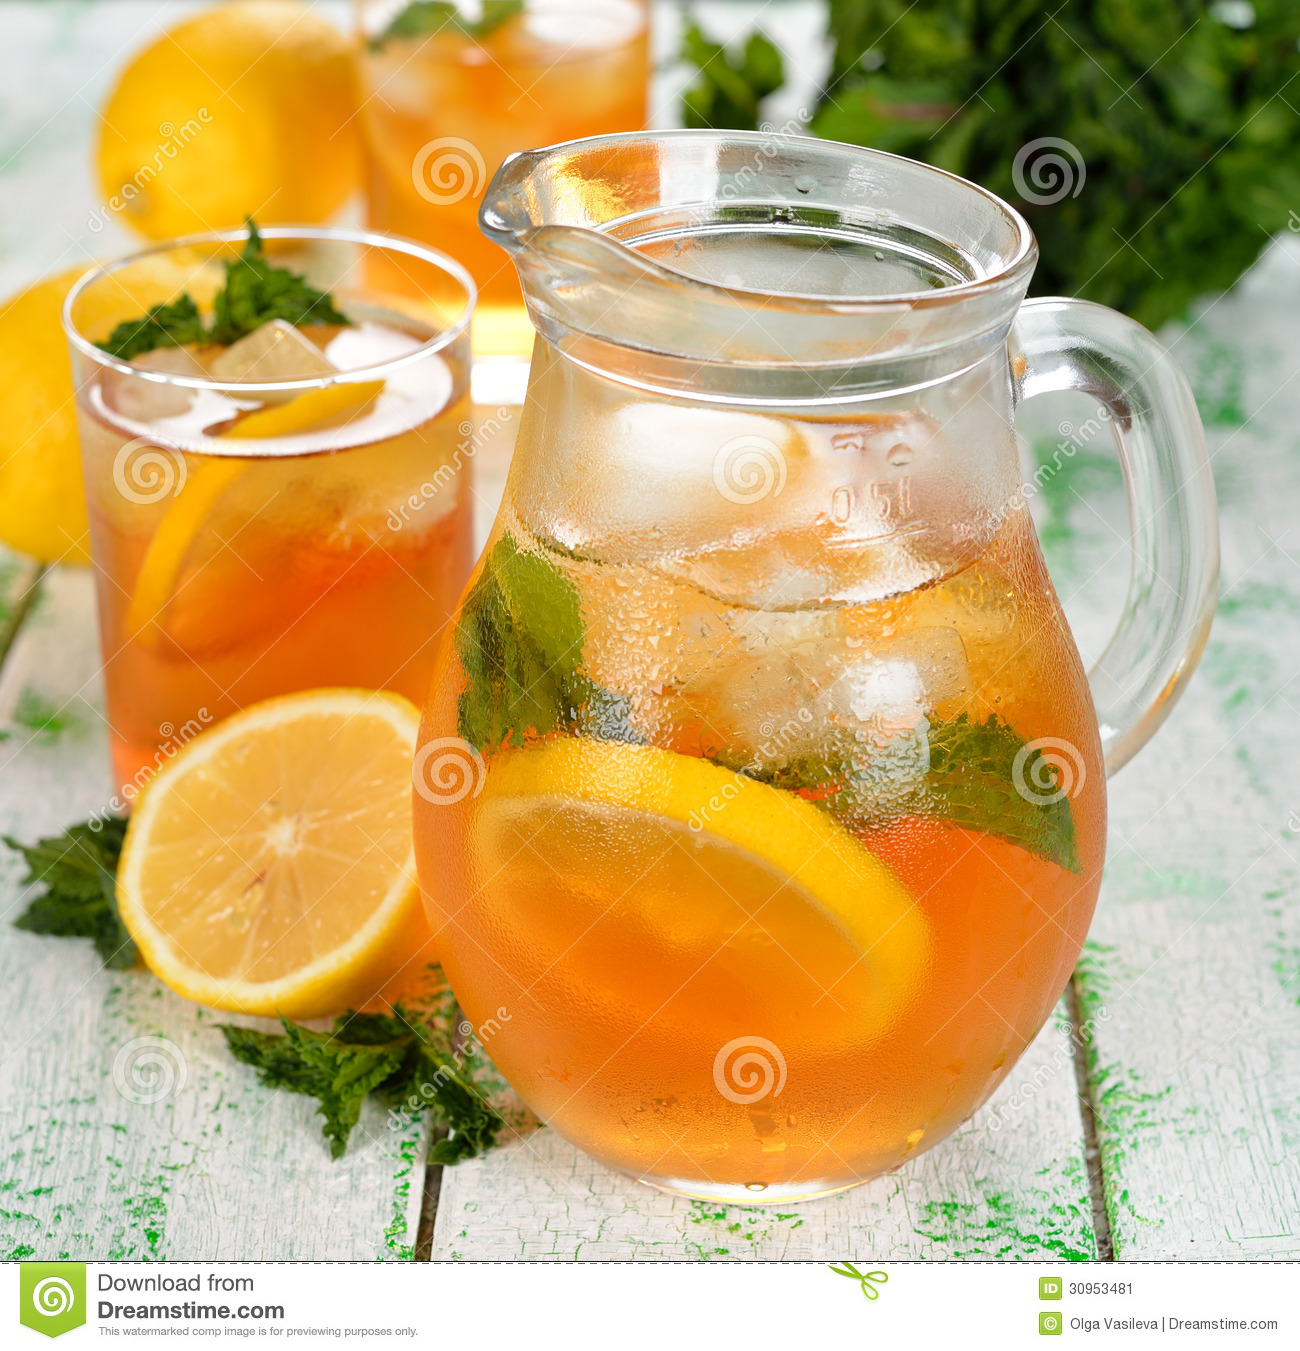 Iced Tea Stock Image - Image: 30953481